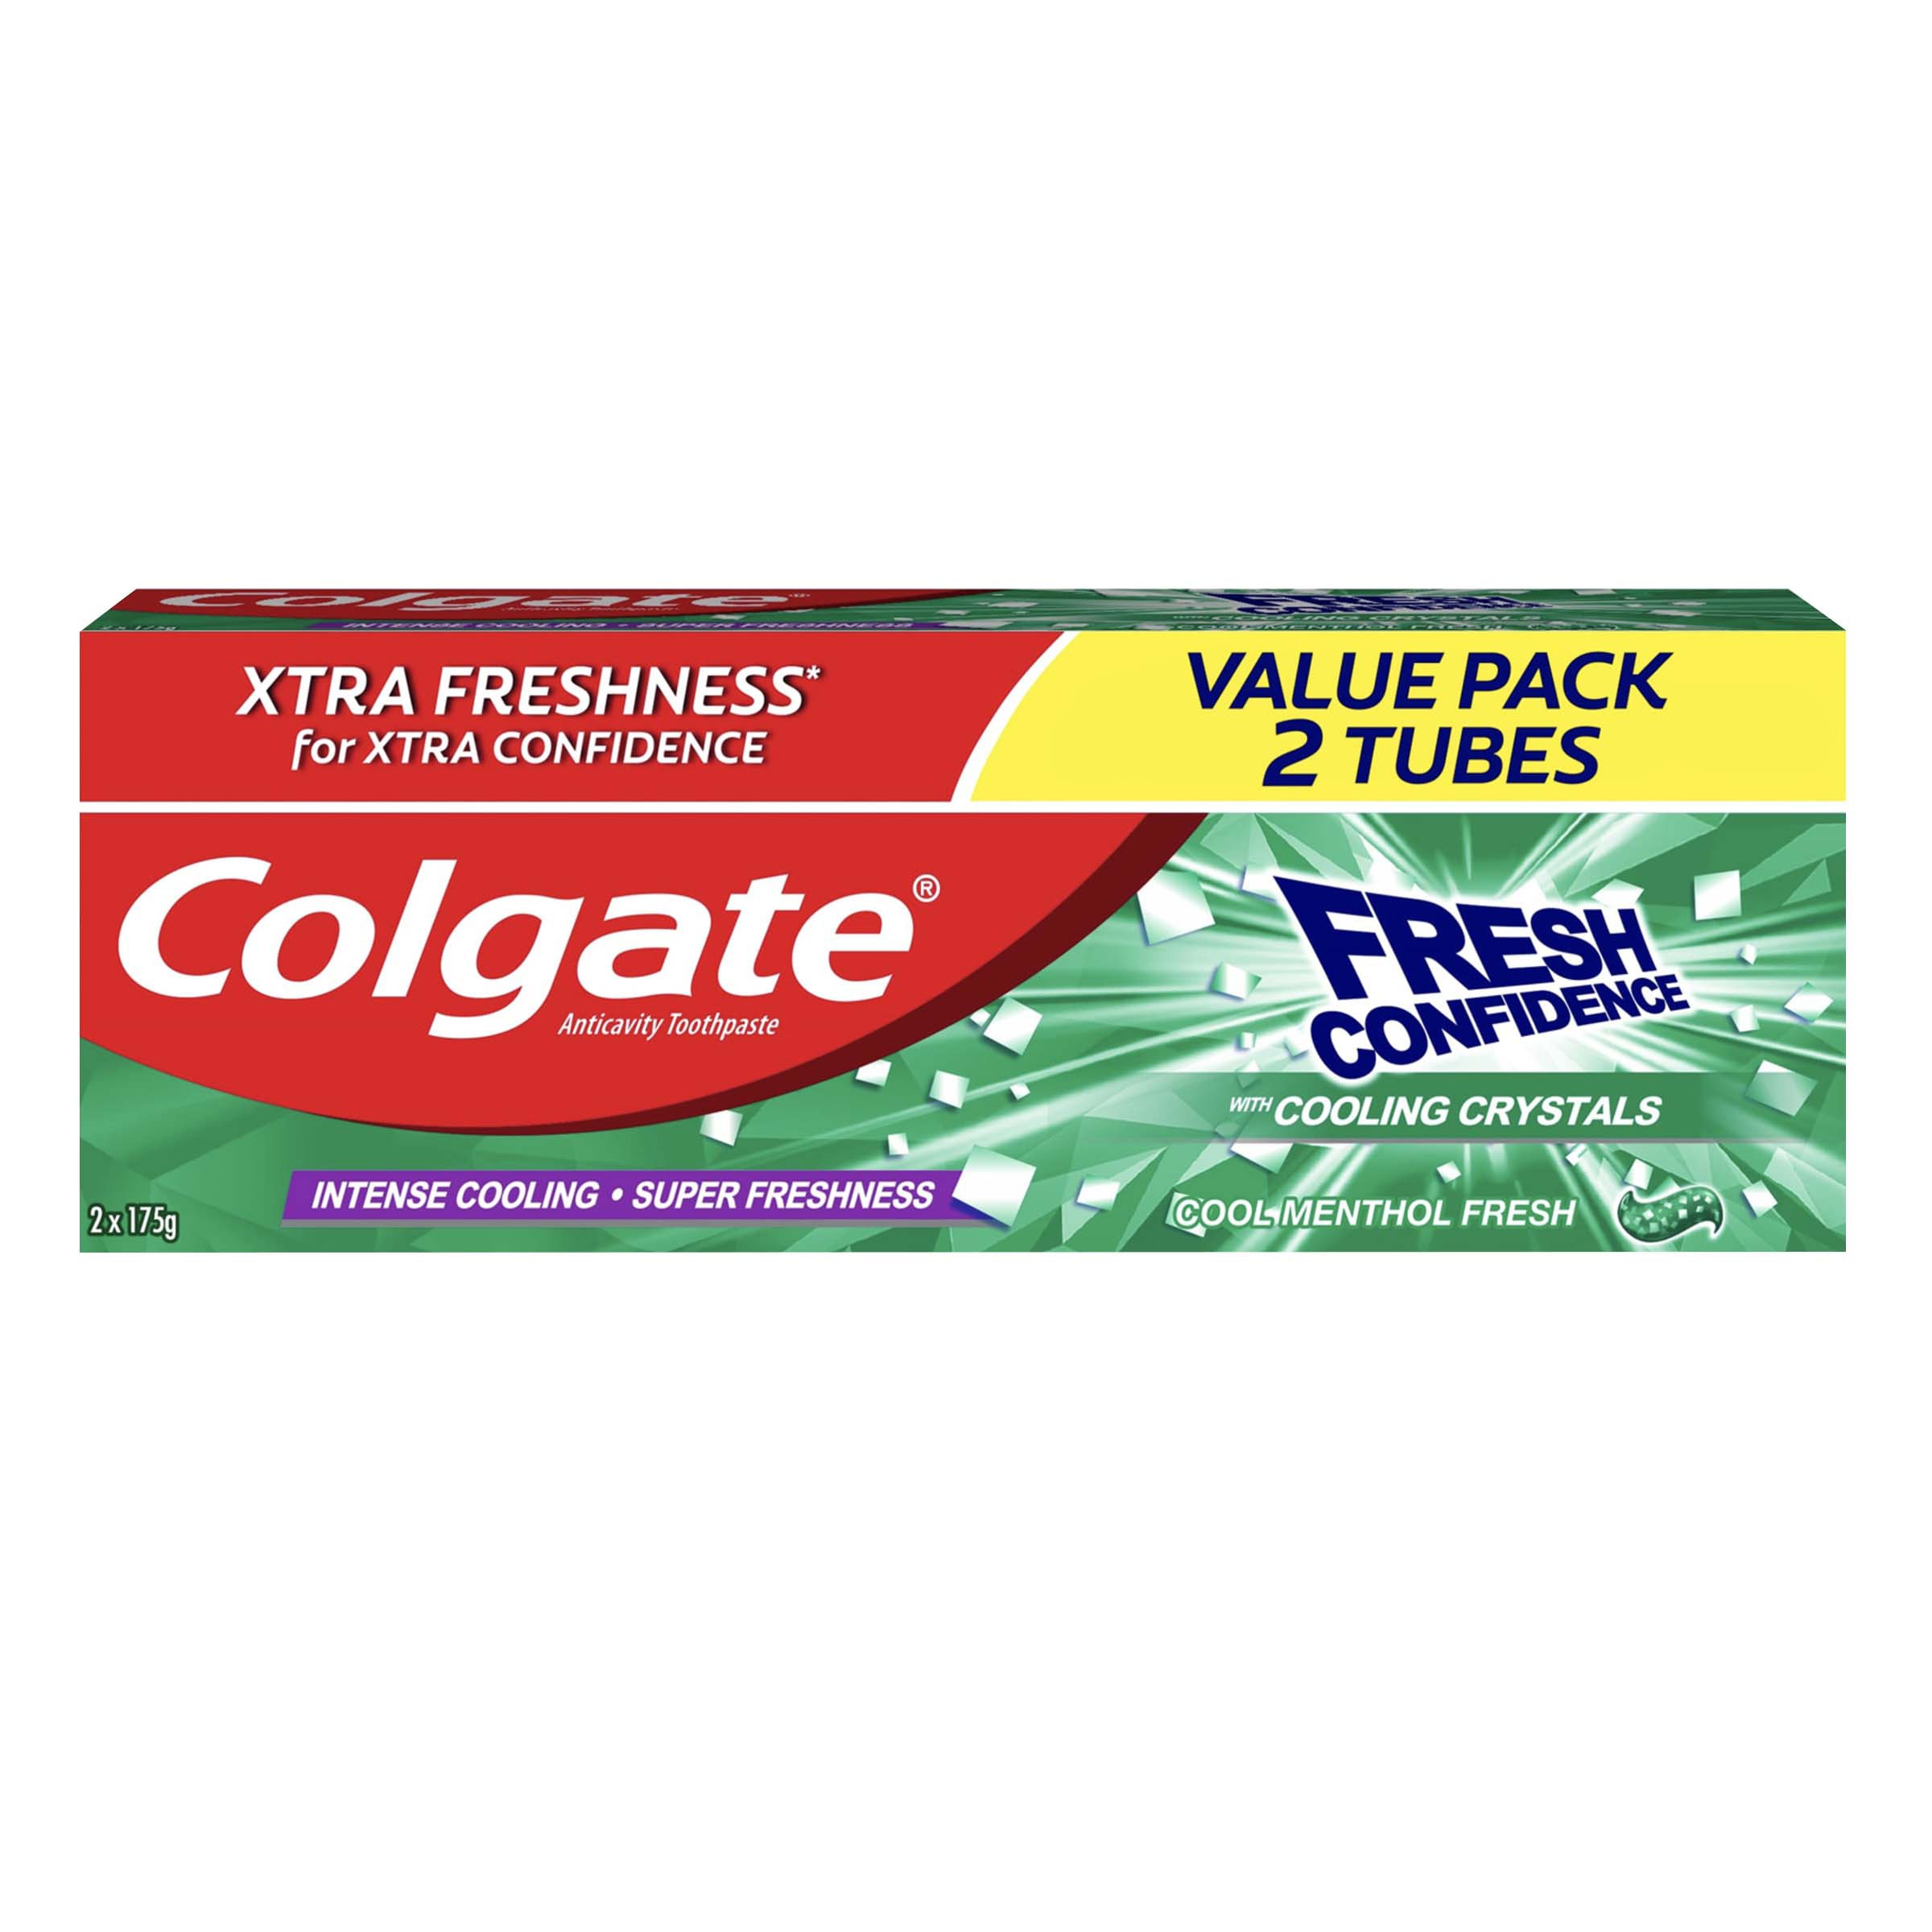 COLGATEFresh Confidence Cool Menthol Fresh Toothpaste for Fresh Breath 175g 2 Tubes,ToothpasteClean Beauty